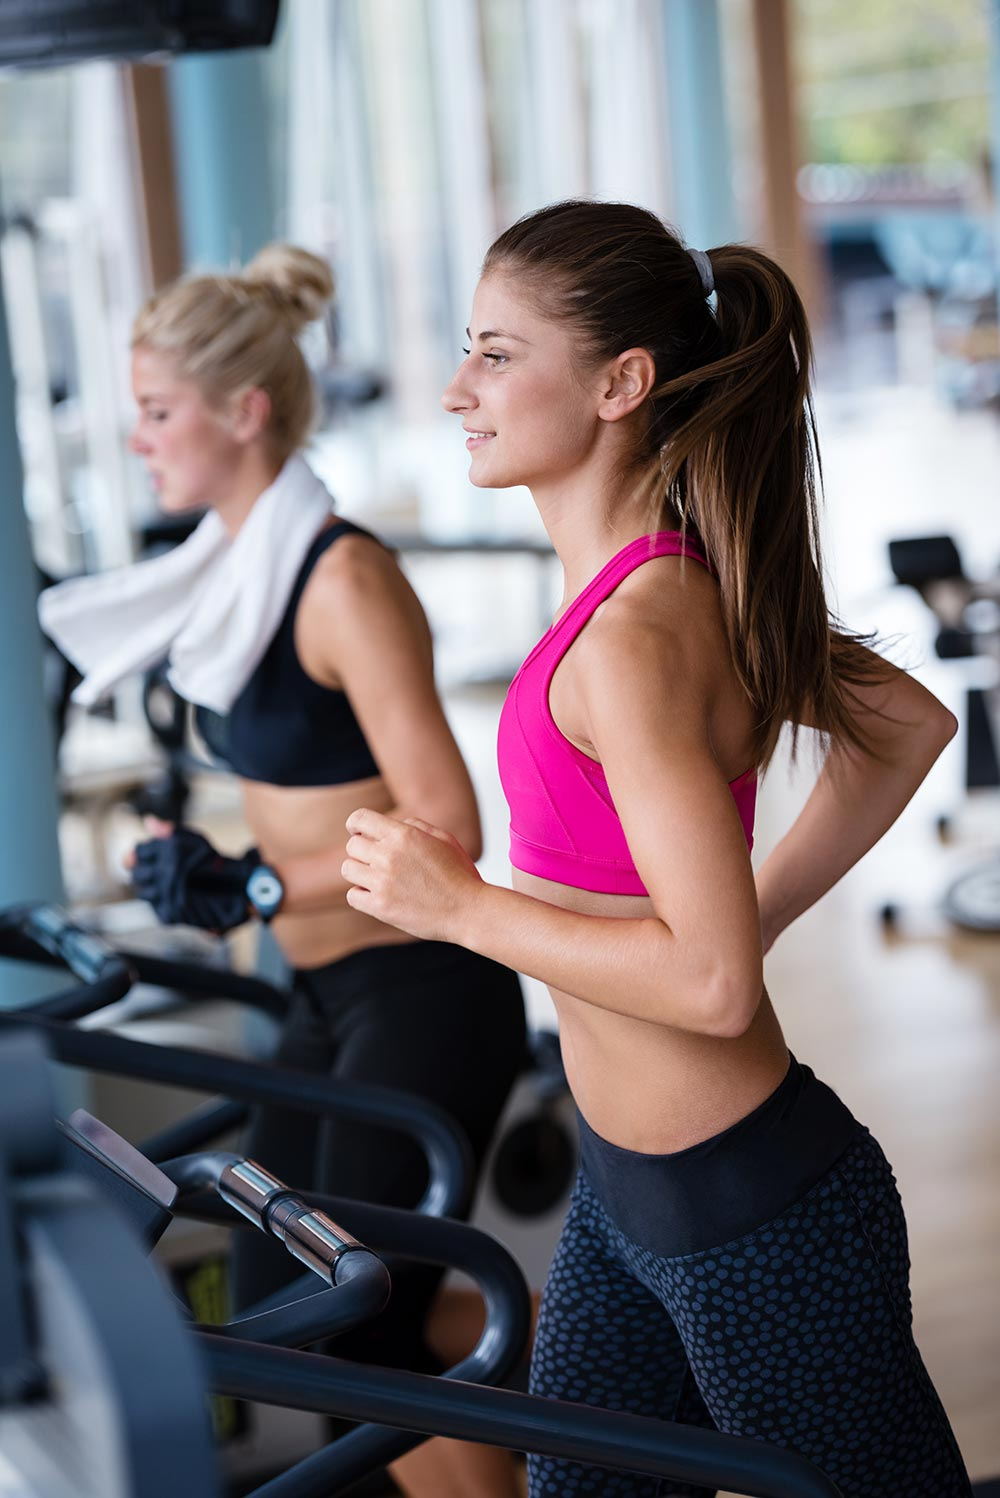 Salem Fitness - women-only fitness clubs in Salem, MA